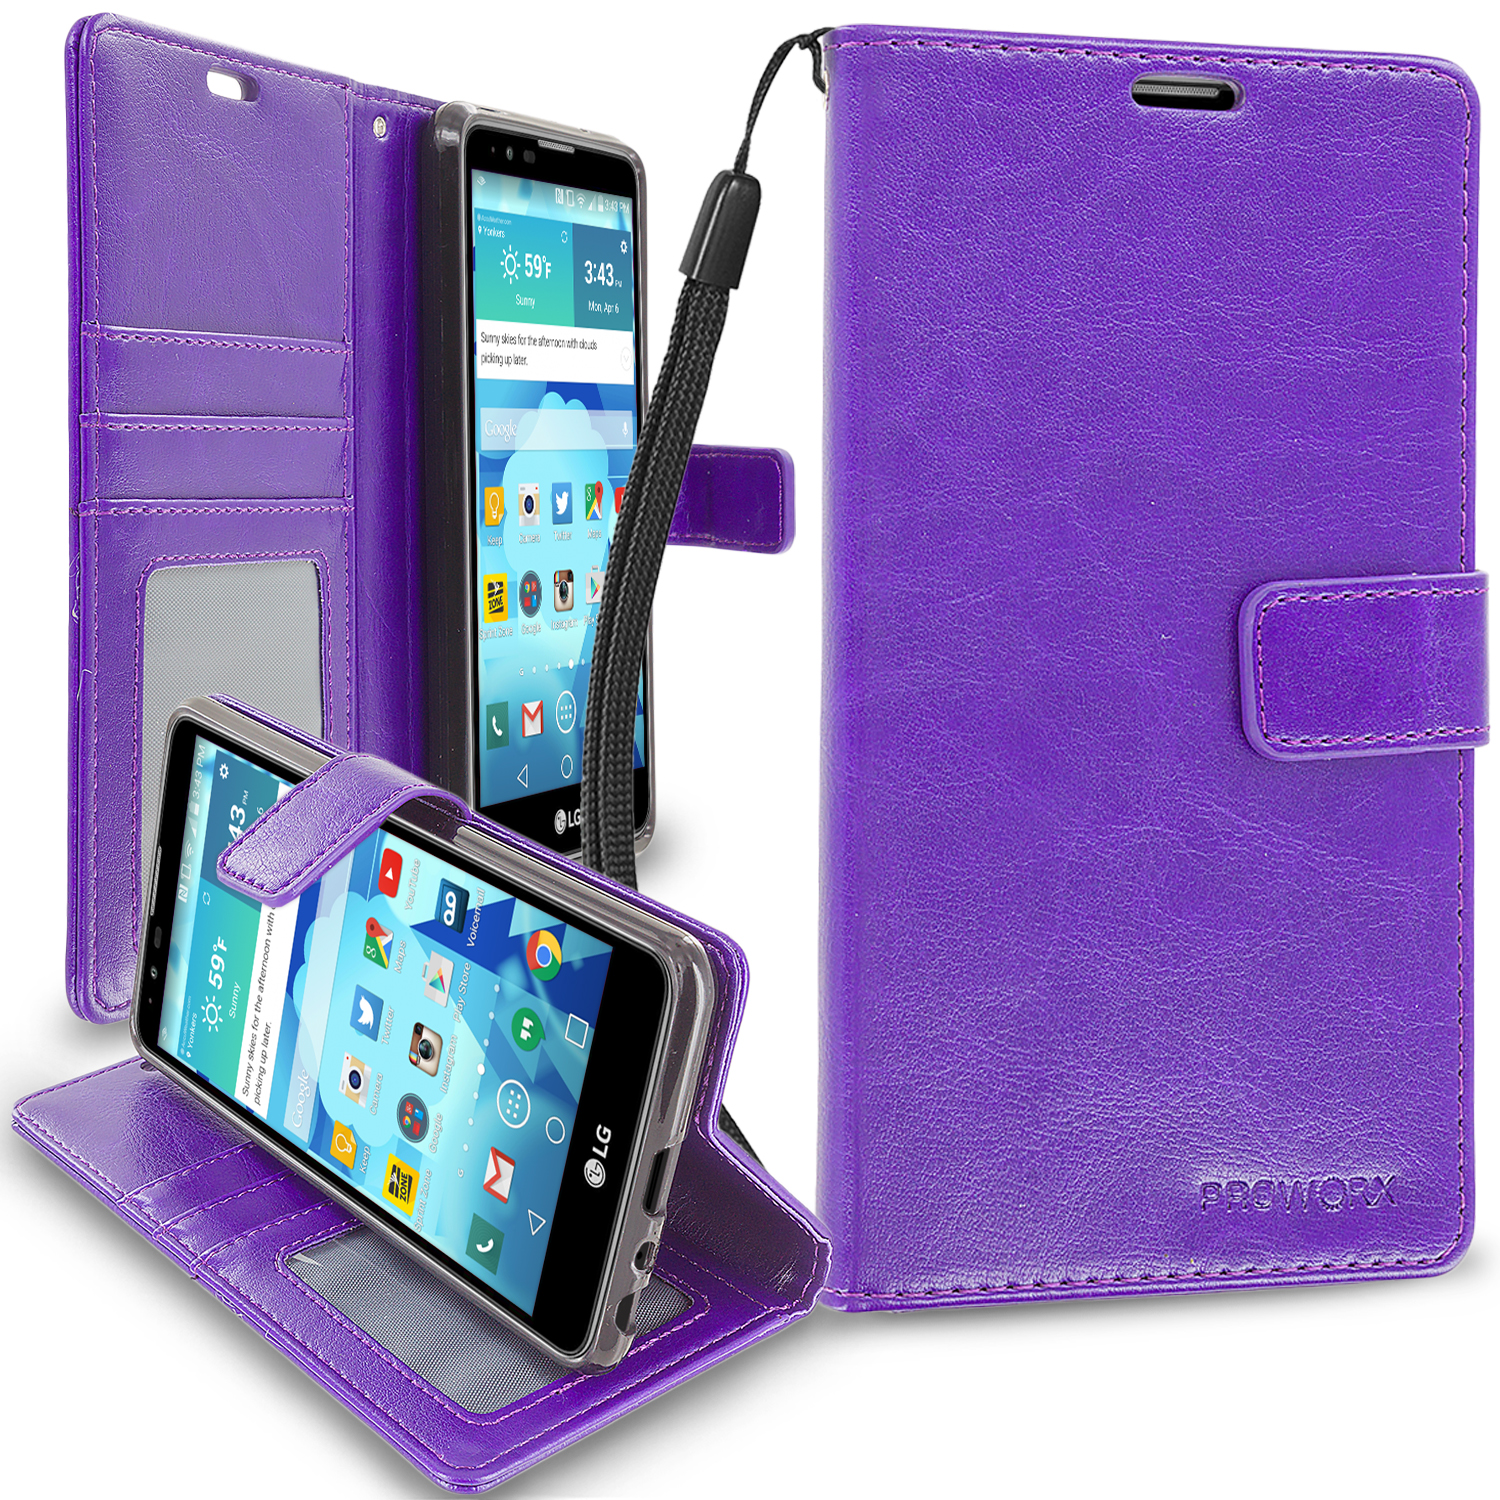 LG G Stylo 2 LS775 Purple ProWorx Wallet Case Luxury PU Leather Case Cover With Card Slots & Stand